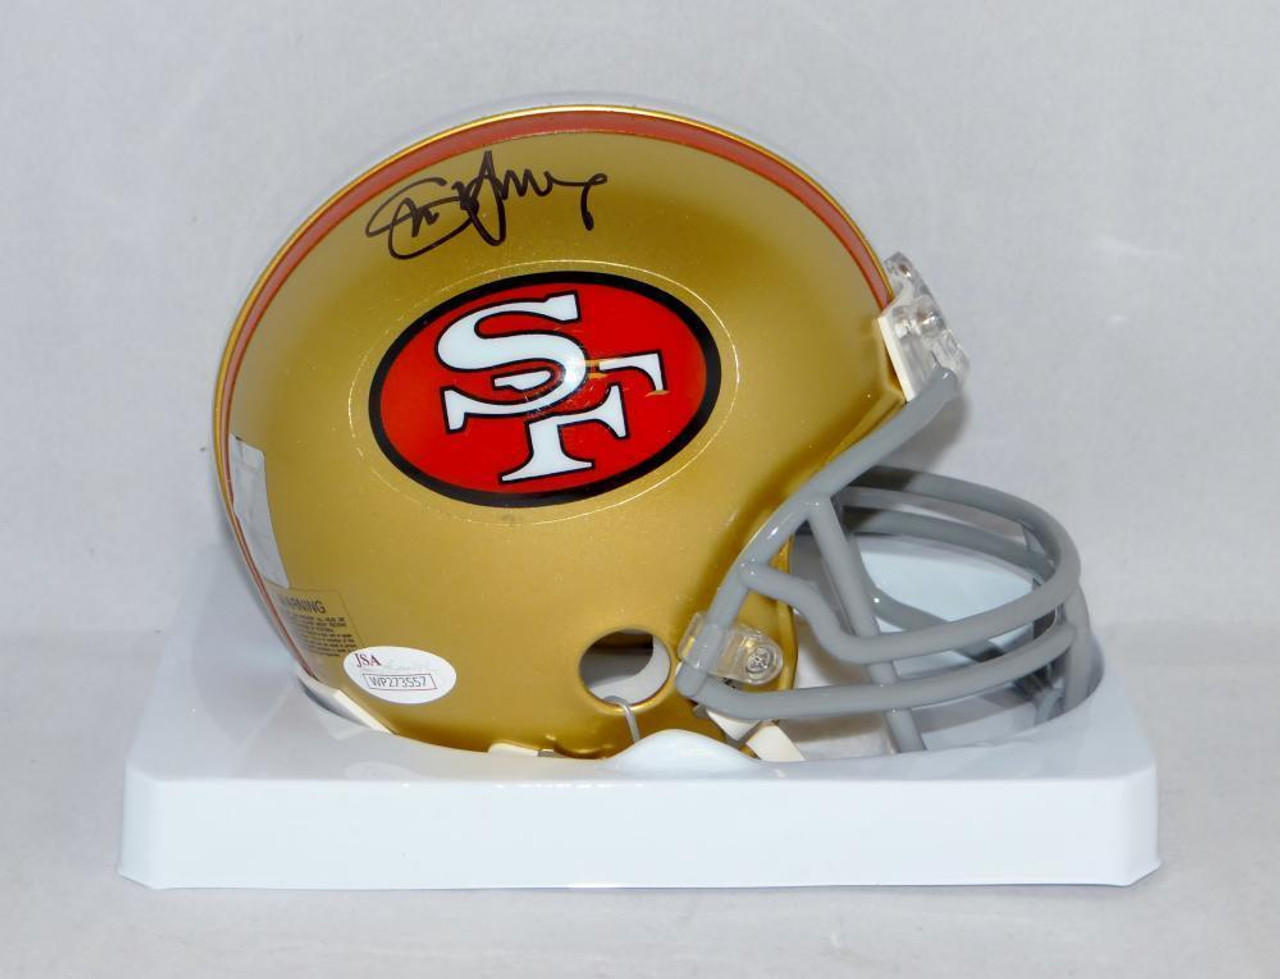 ebd72a073 Steve Young San Francisco 49ers Autographed Mini Football Helmet - Maverick  Autographs and Collectibles